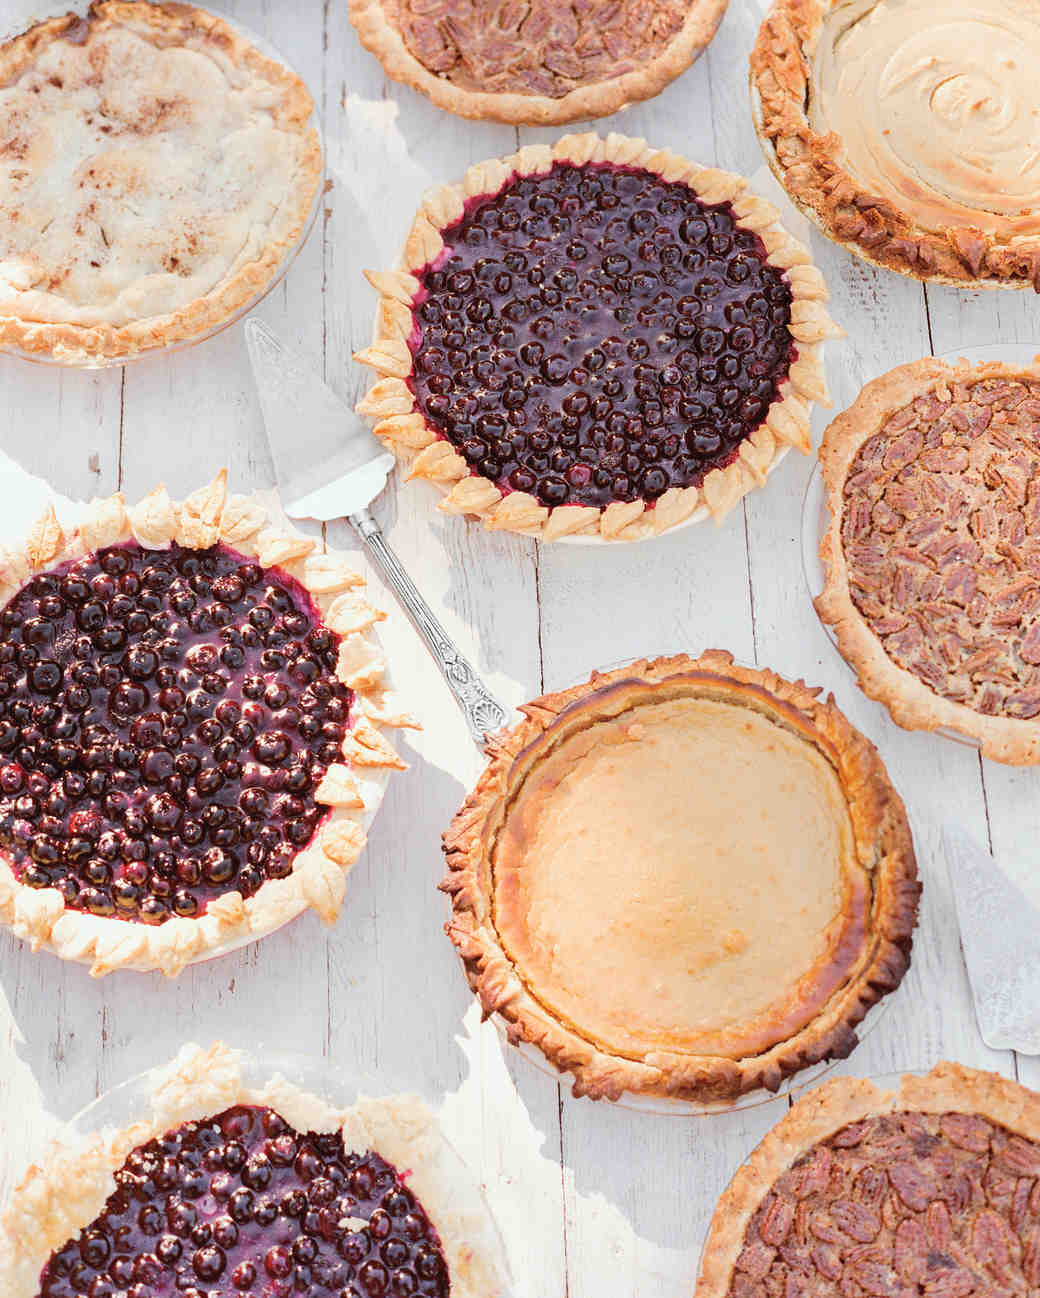 Cakes or pies 83